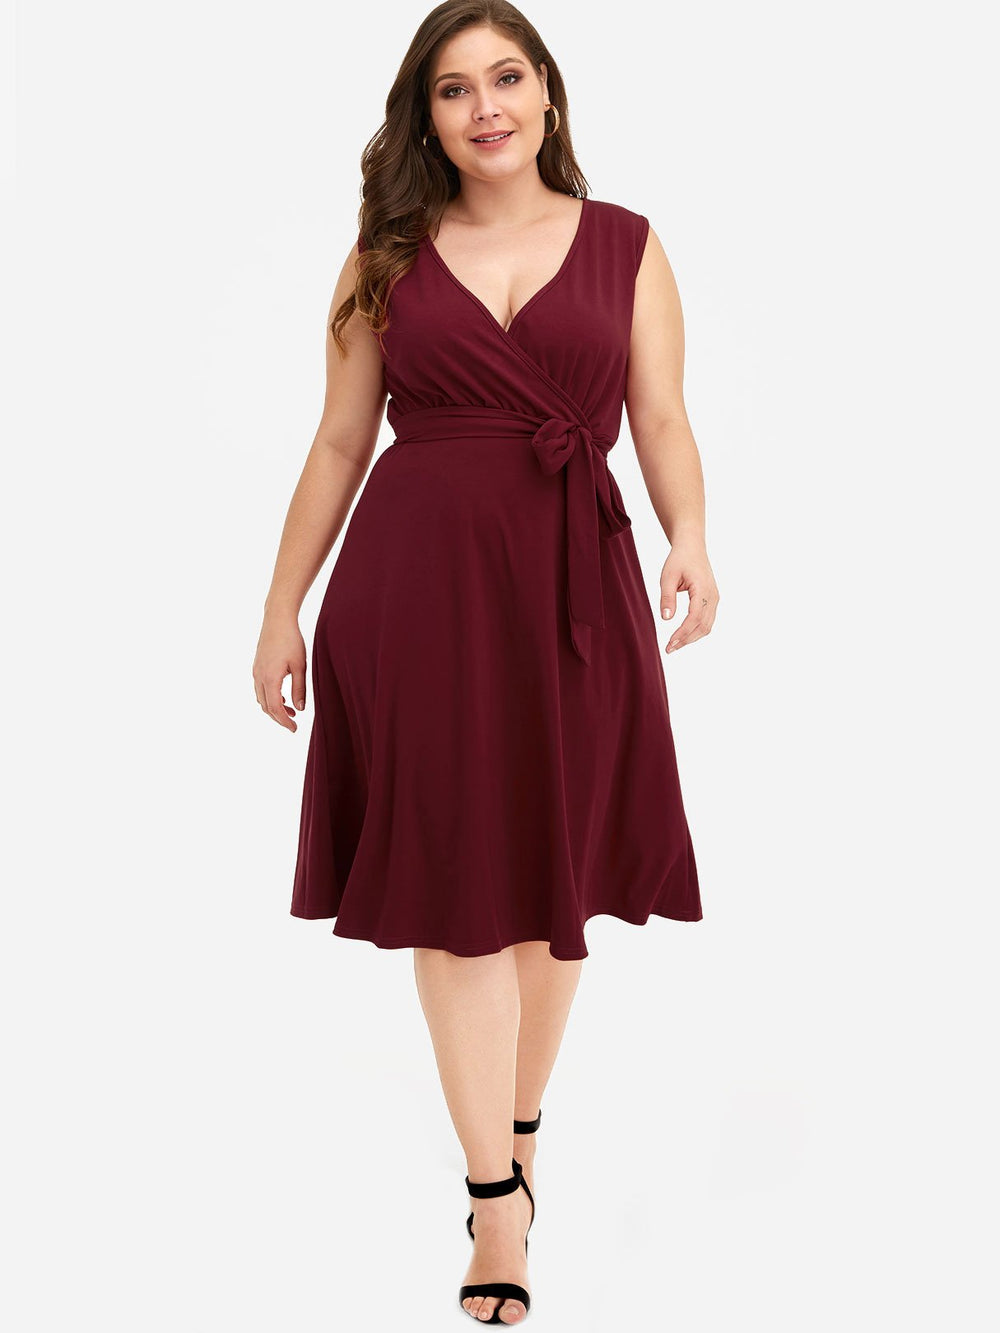 Plus Size Party Dresses On Sale